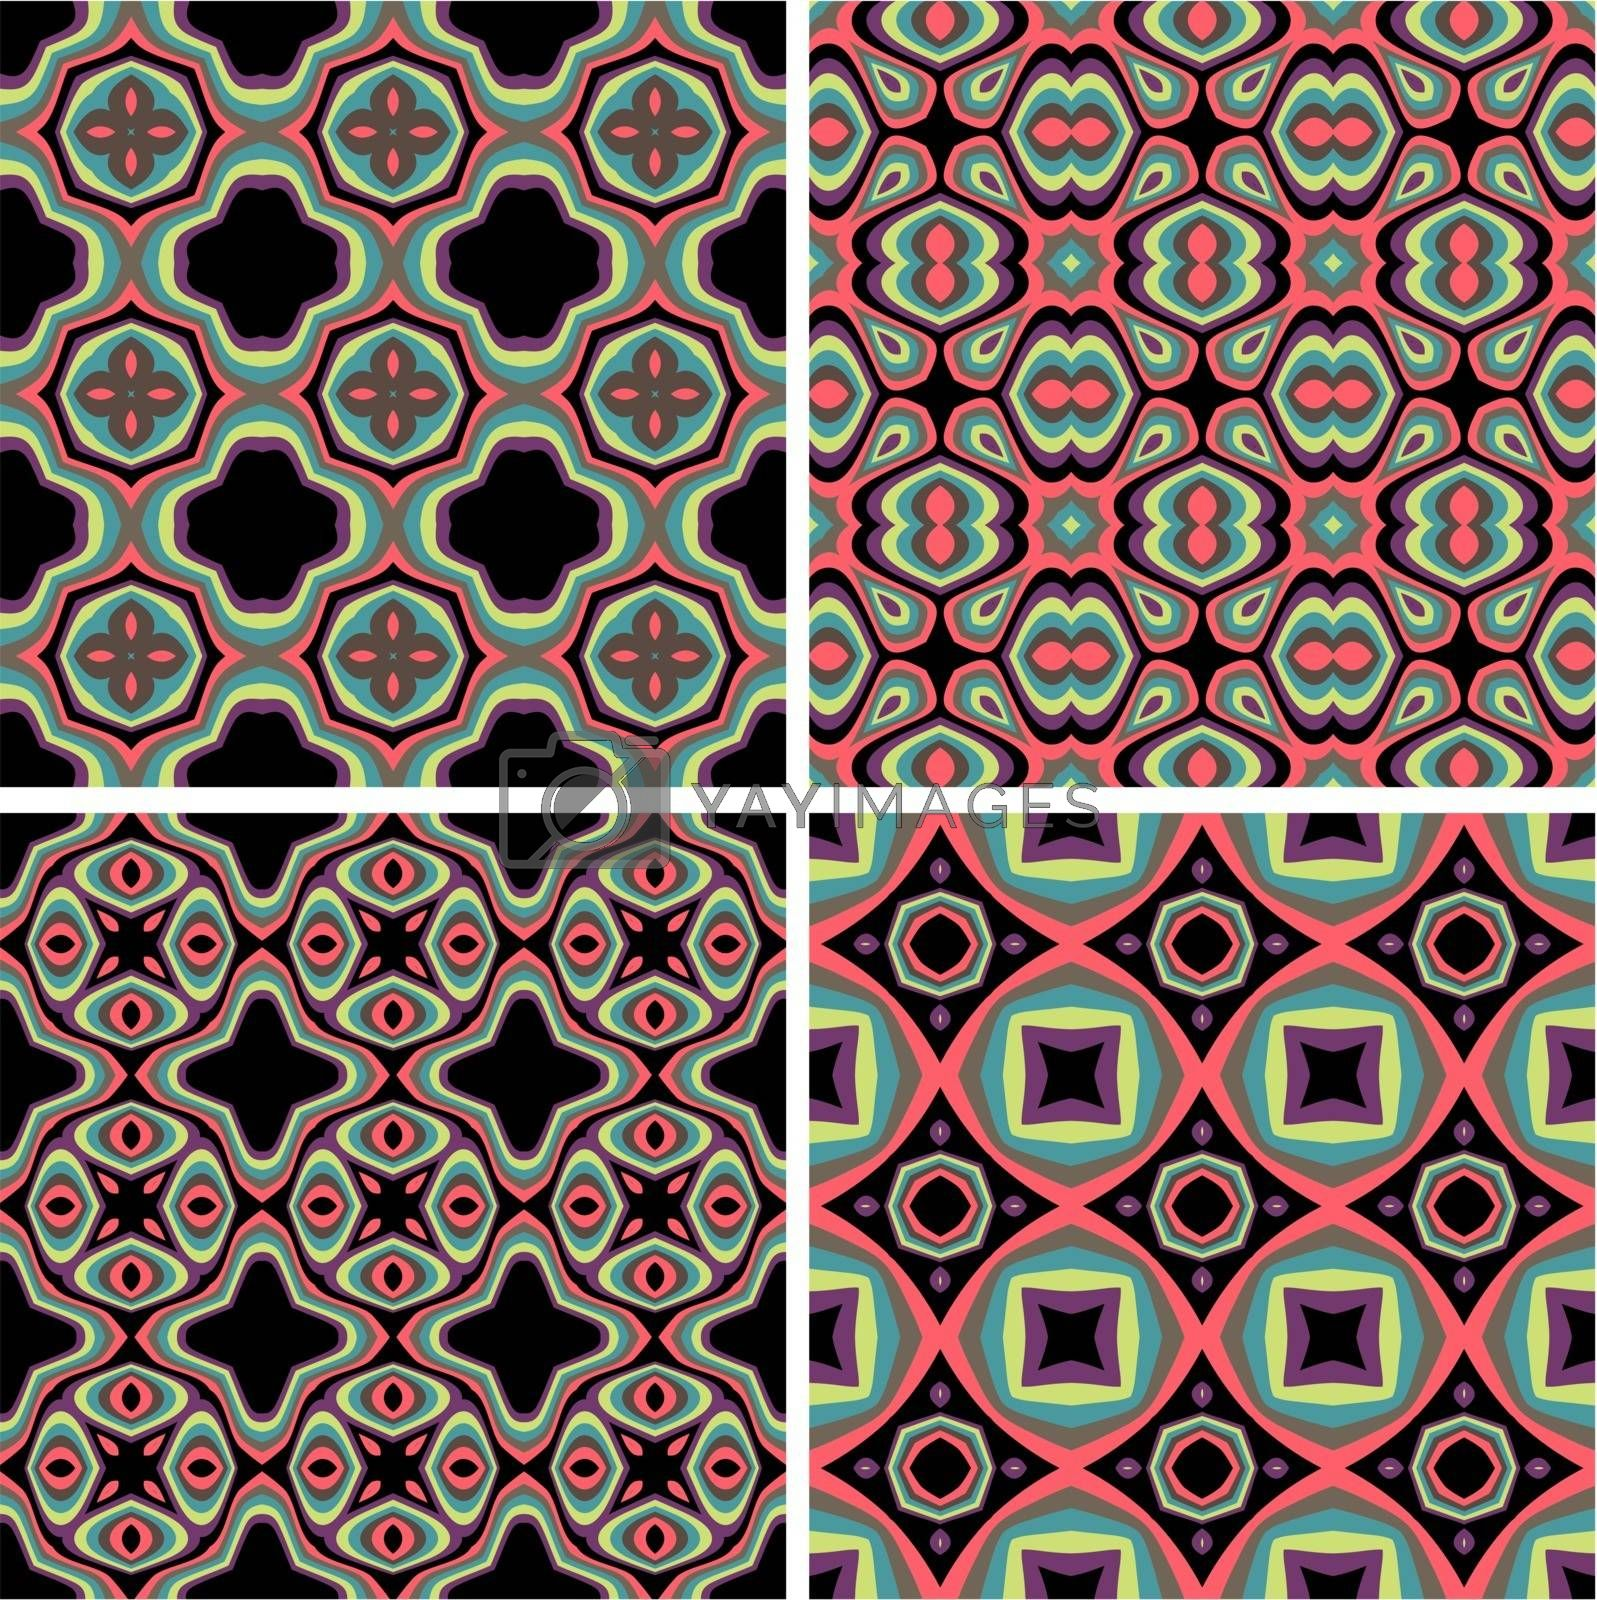 Set of Seamless Colorful Retro Pattern Backgrounds by epic33